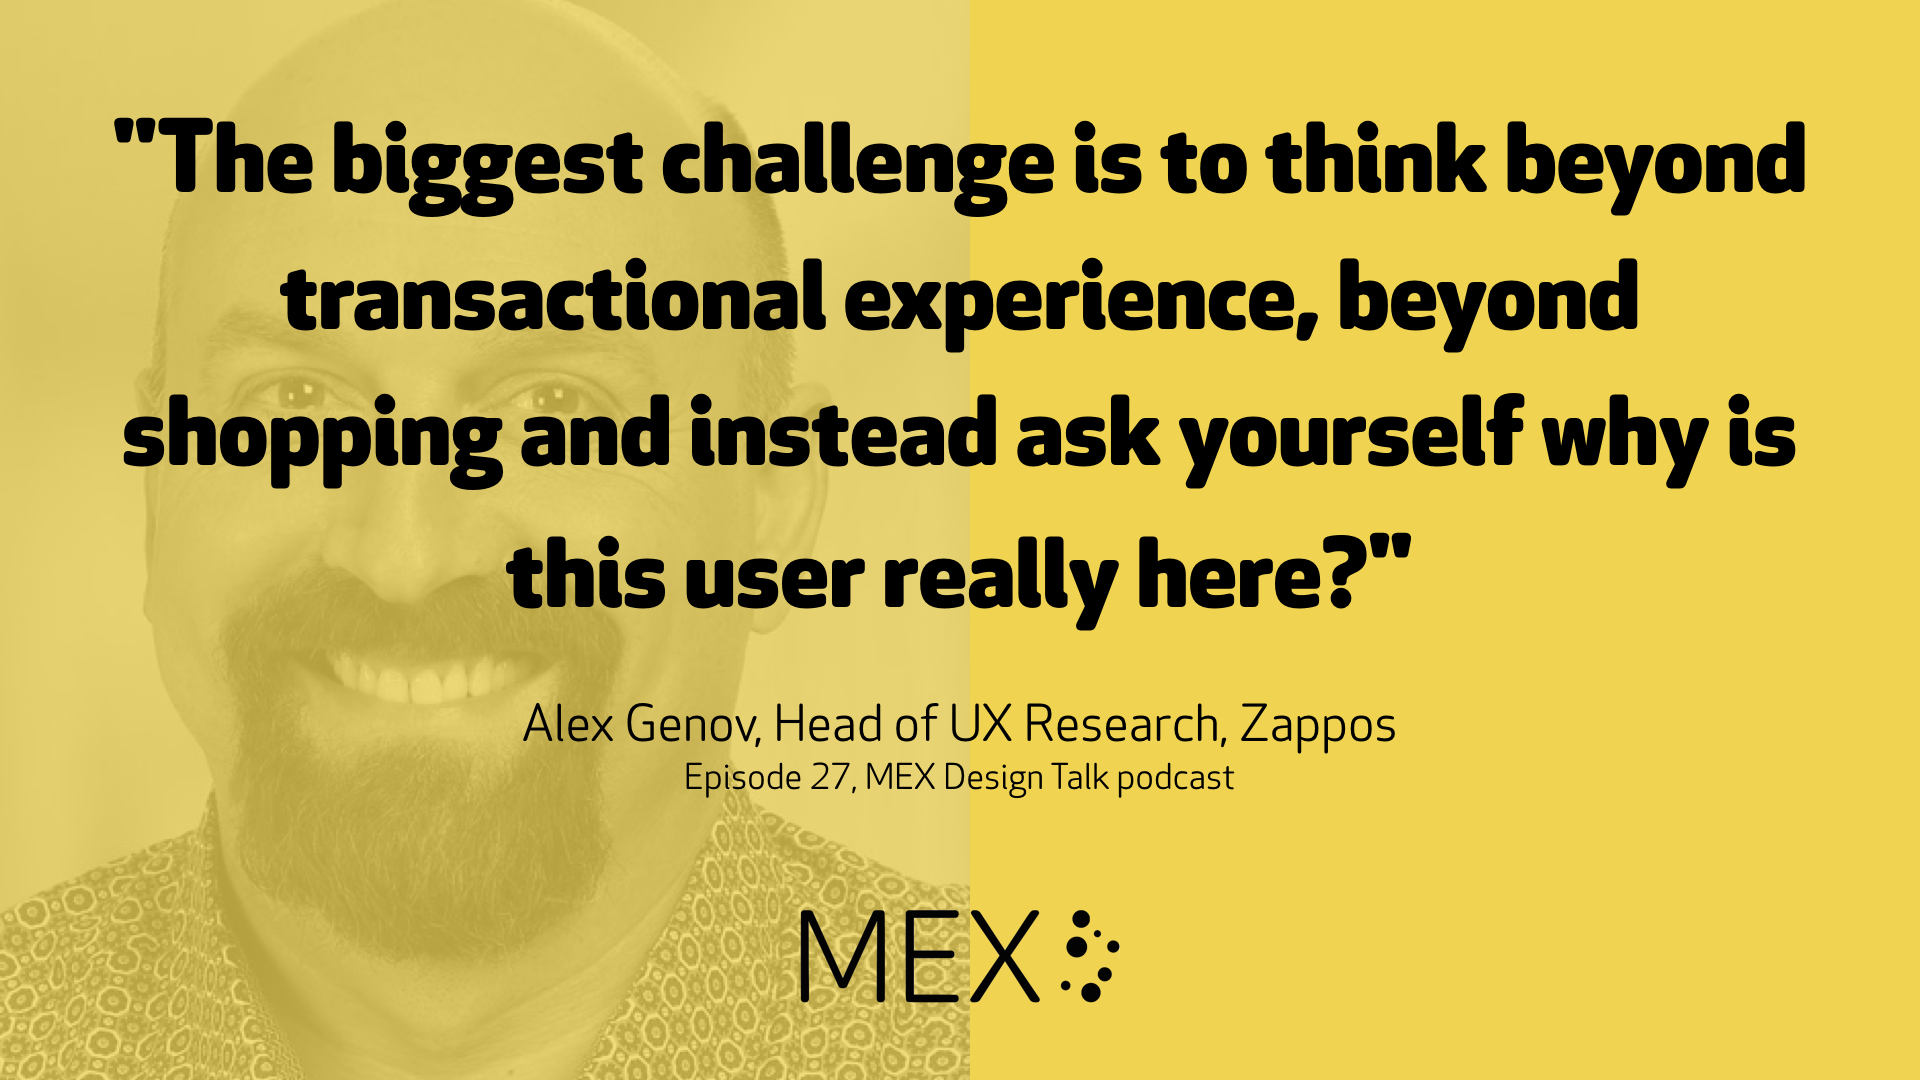 """The biggest challenge is to think beyond transactional experience, beyond shopping and instead ask yourself why is this user really here?"" Alex Genov, Head of UX Research, Zappos Episode 27, MEX Design Talk podcast"